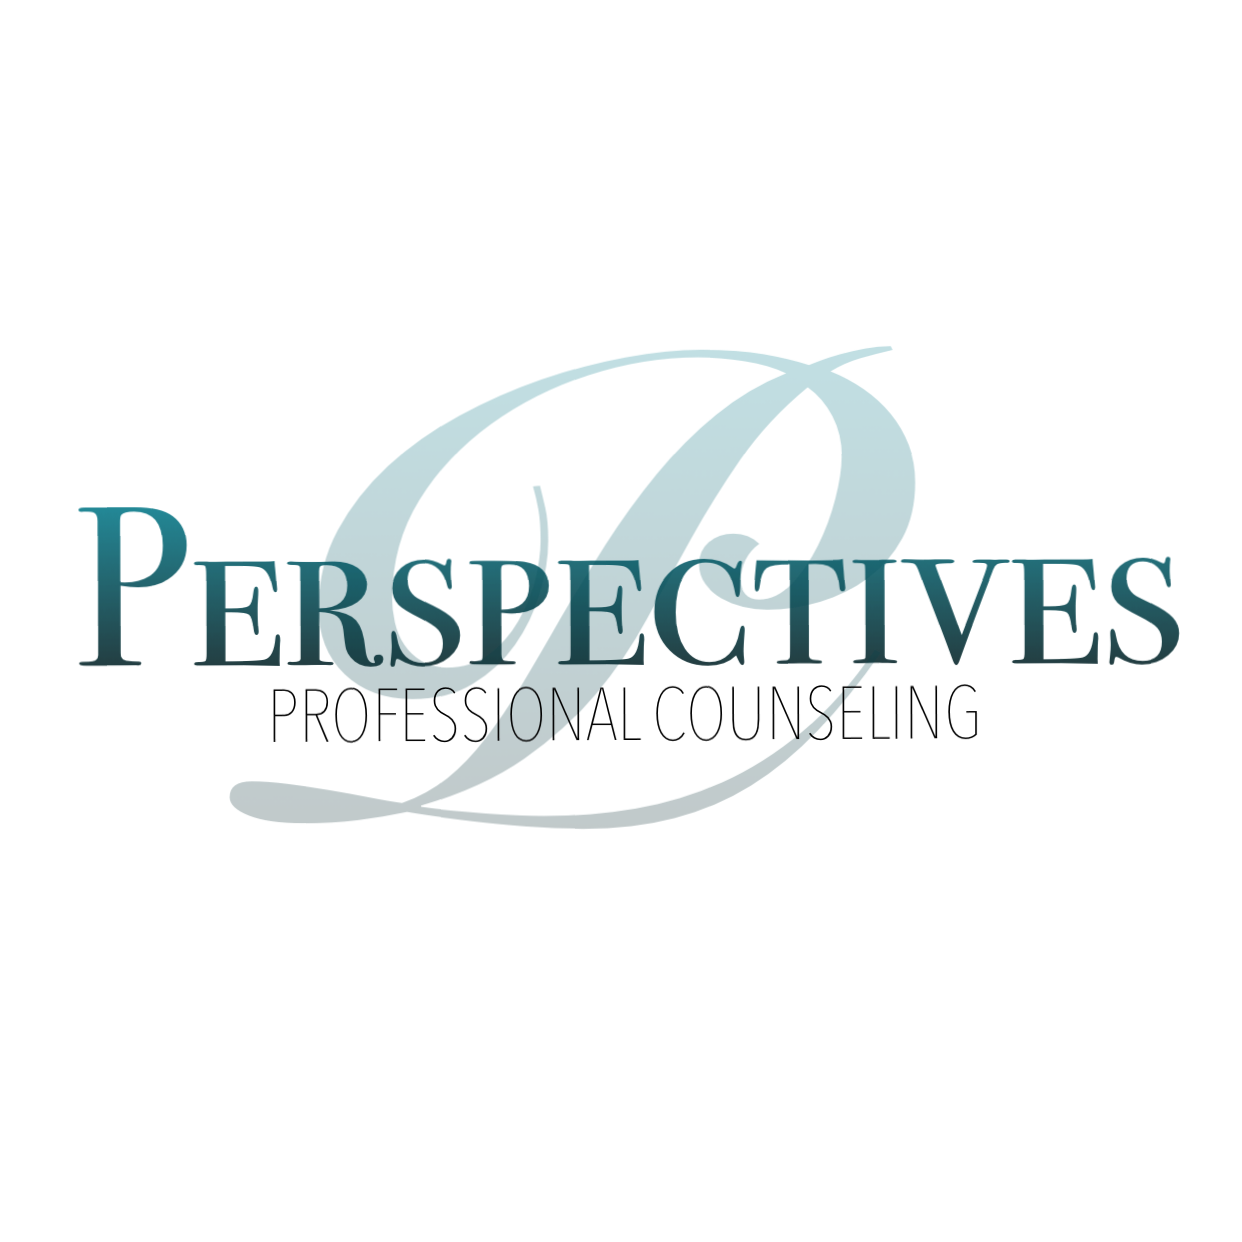 Perspectives Professional Counseling - Hastings, NE 68901 - (402)834-0884 | ShowMeLocal.com